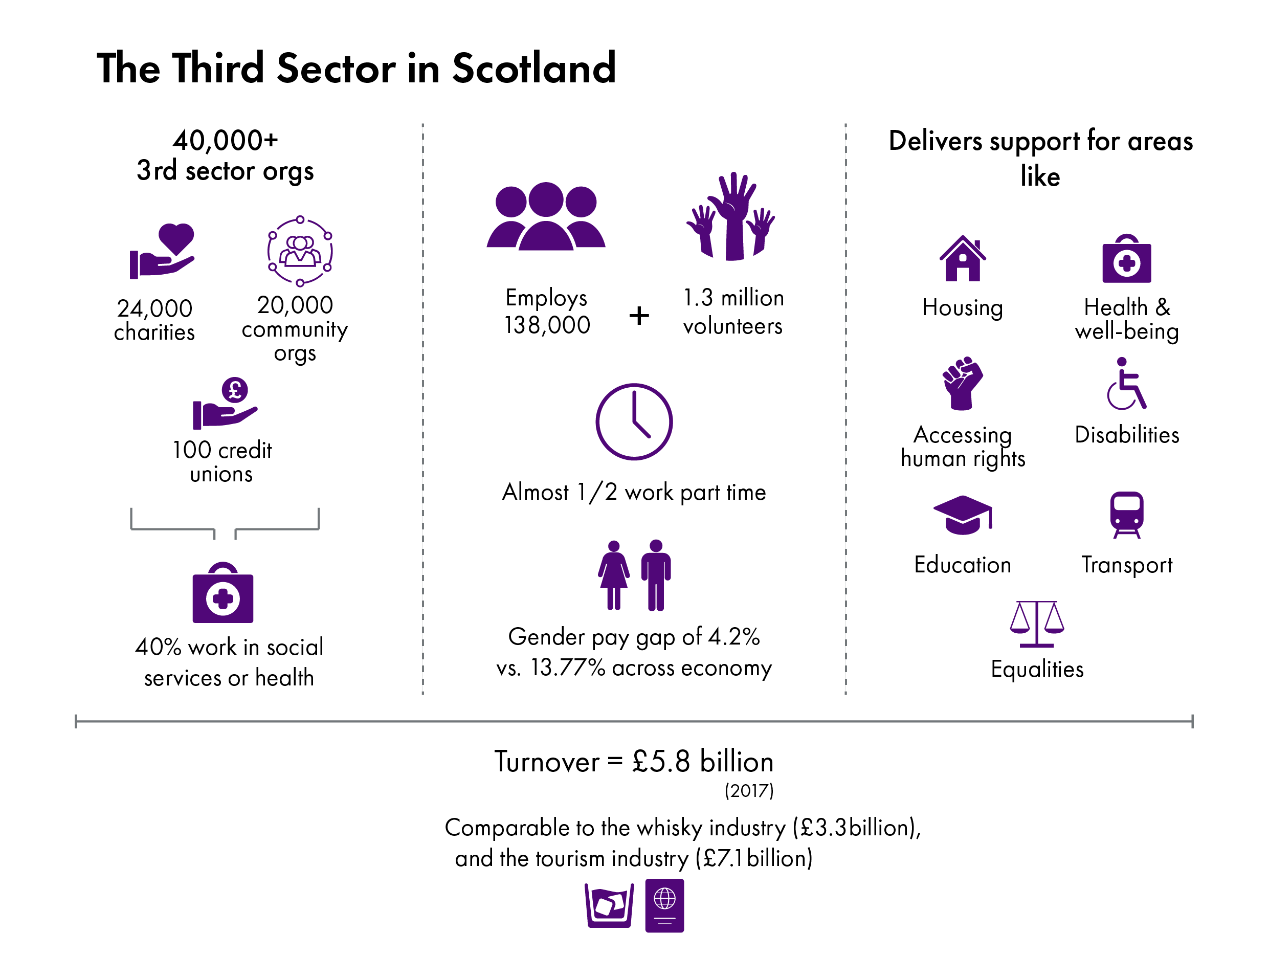 A graphic showing the content of the following paragraphs: sectors supported by the third sector and the budget and turnover